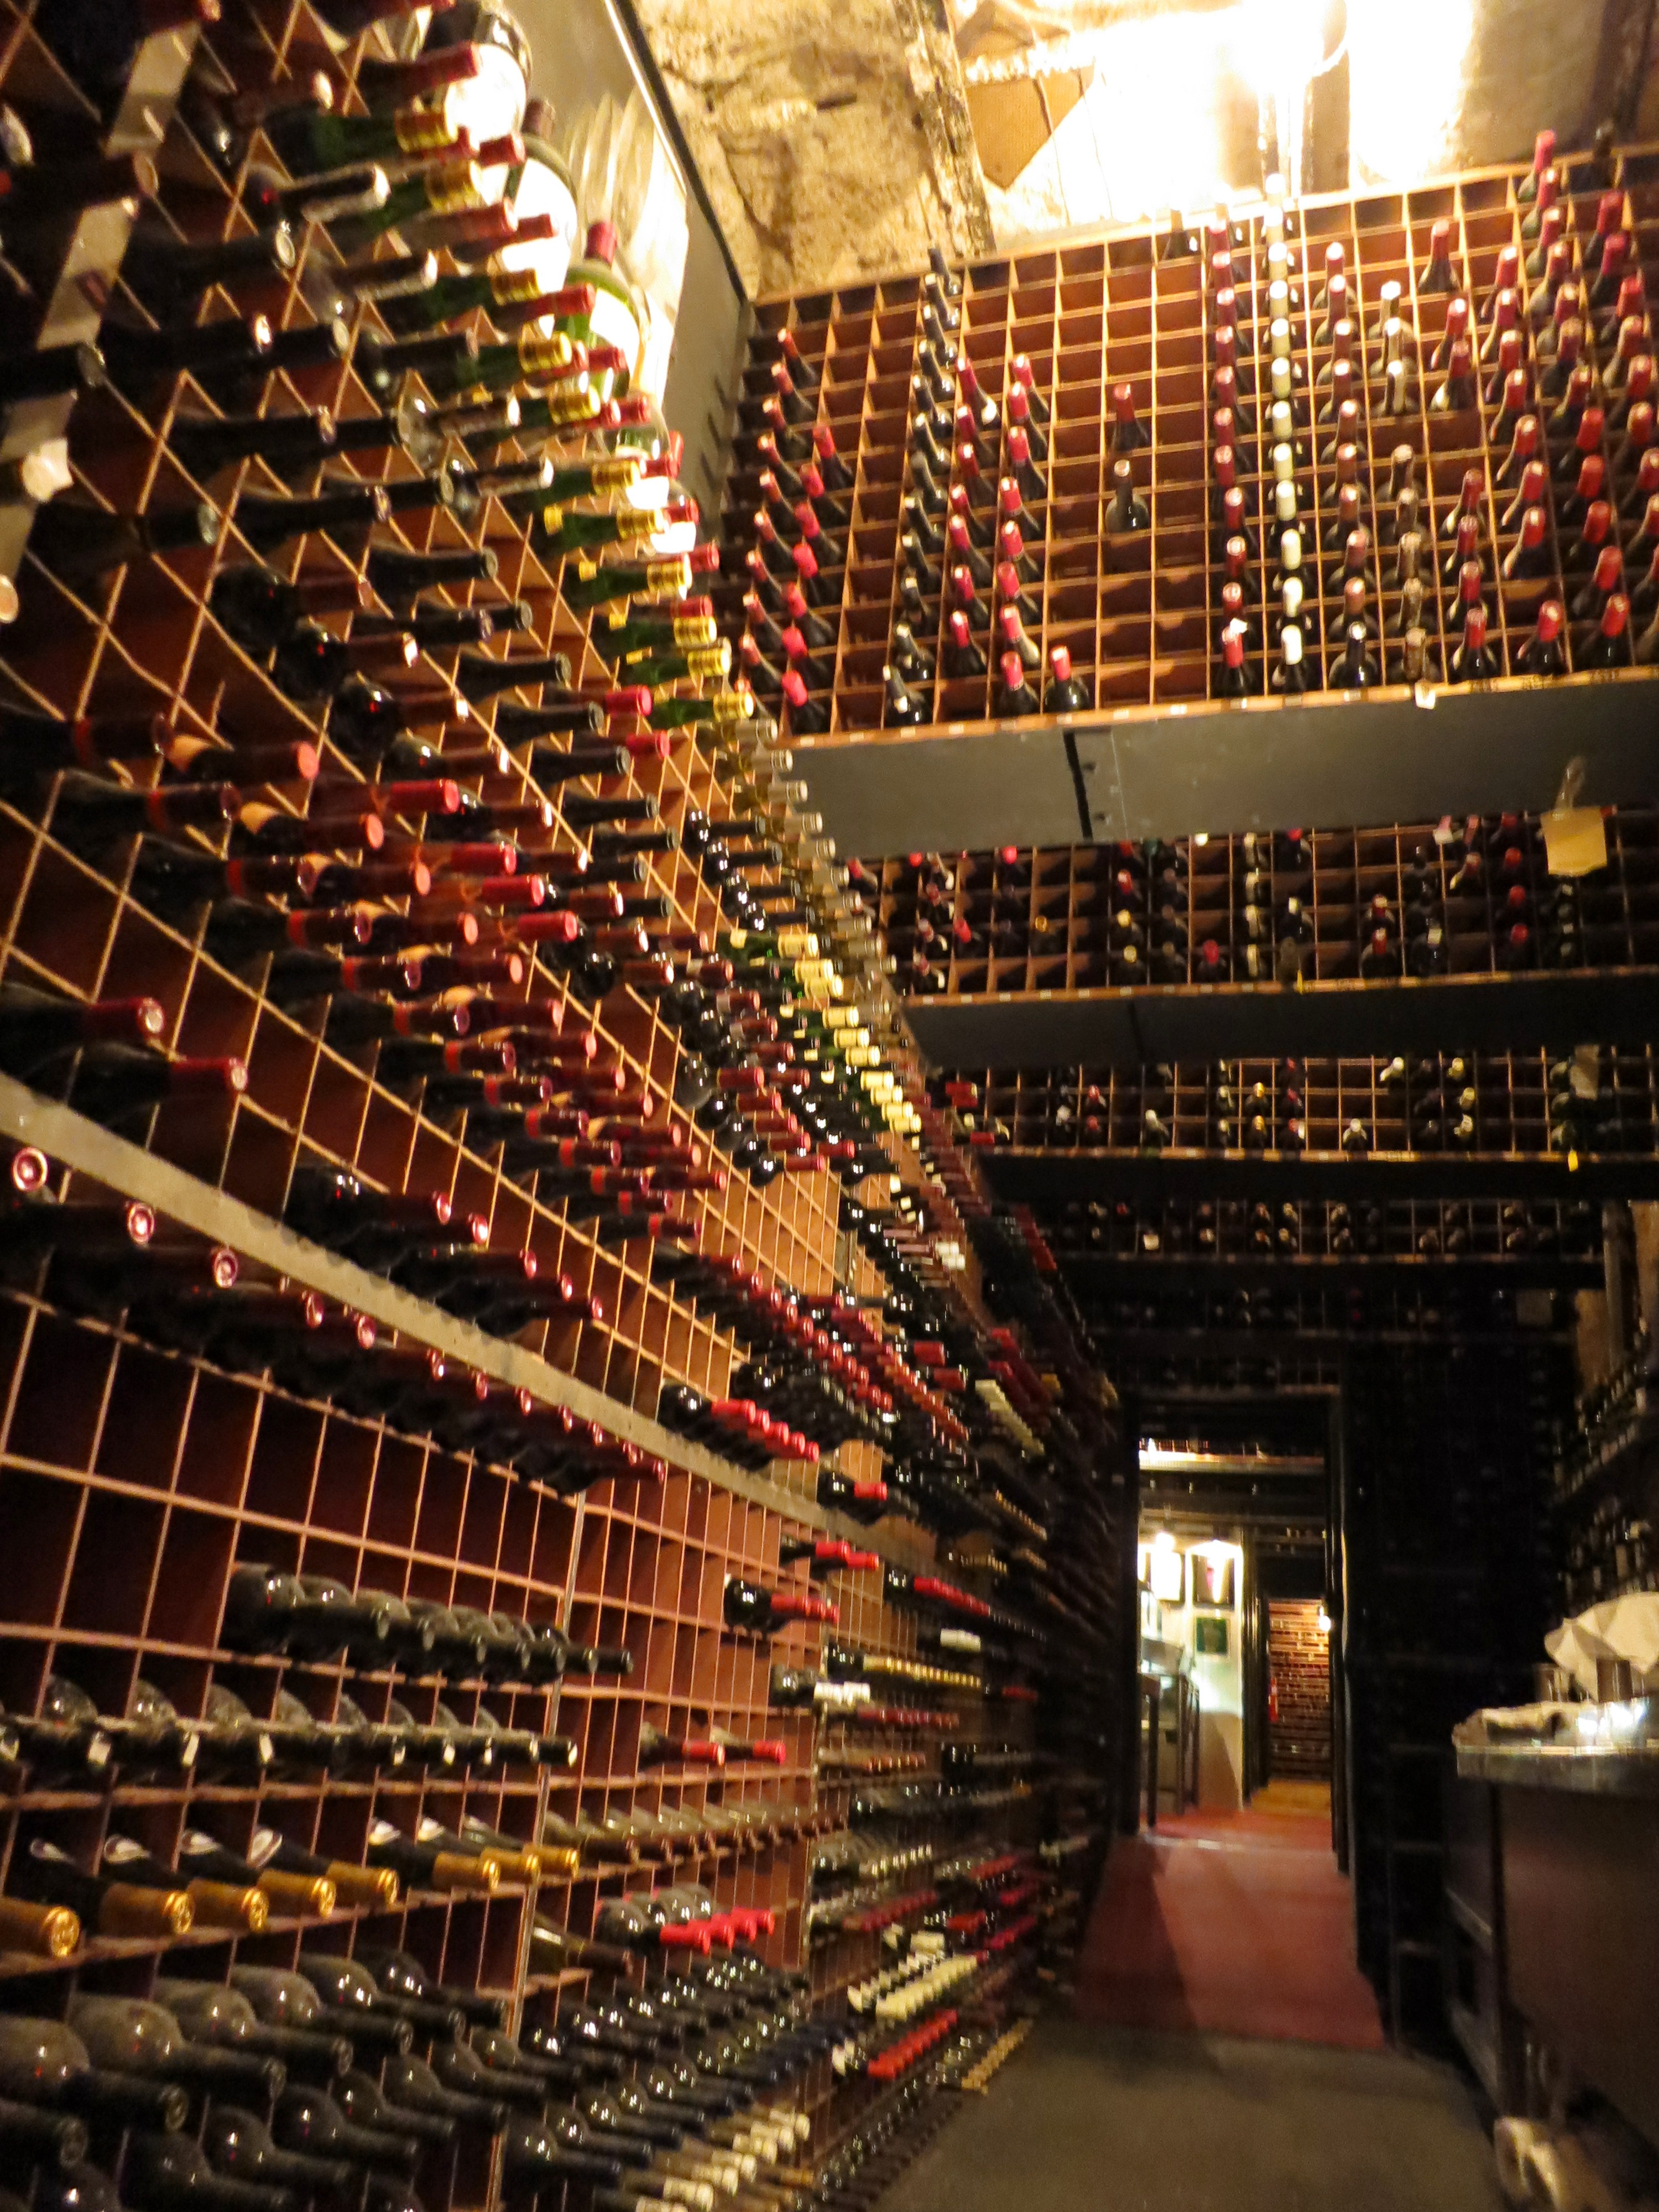 The wine cellar gayot 39 s blog for House wine cellar